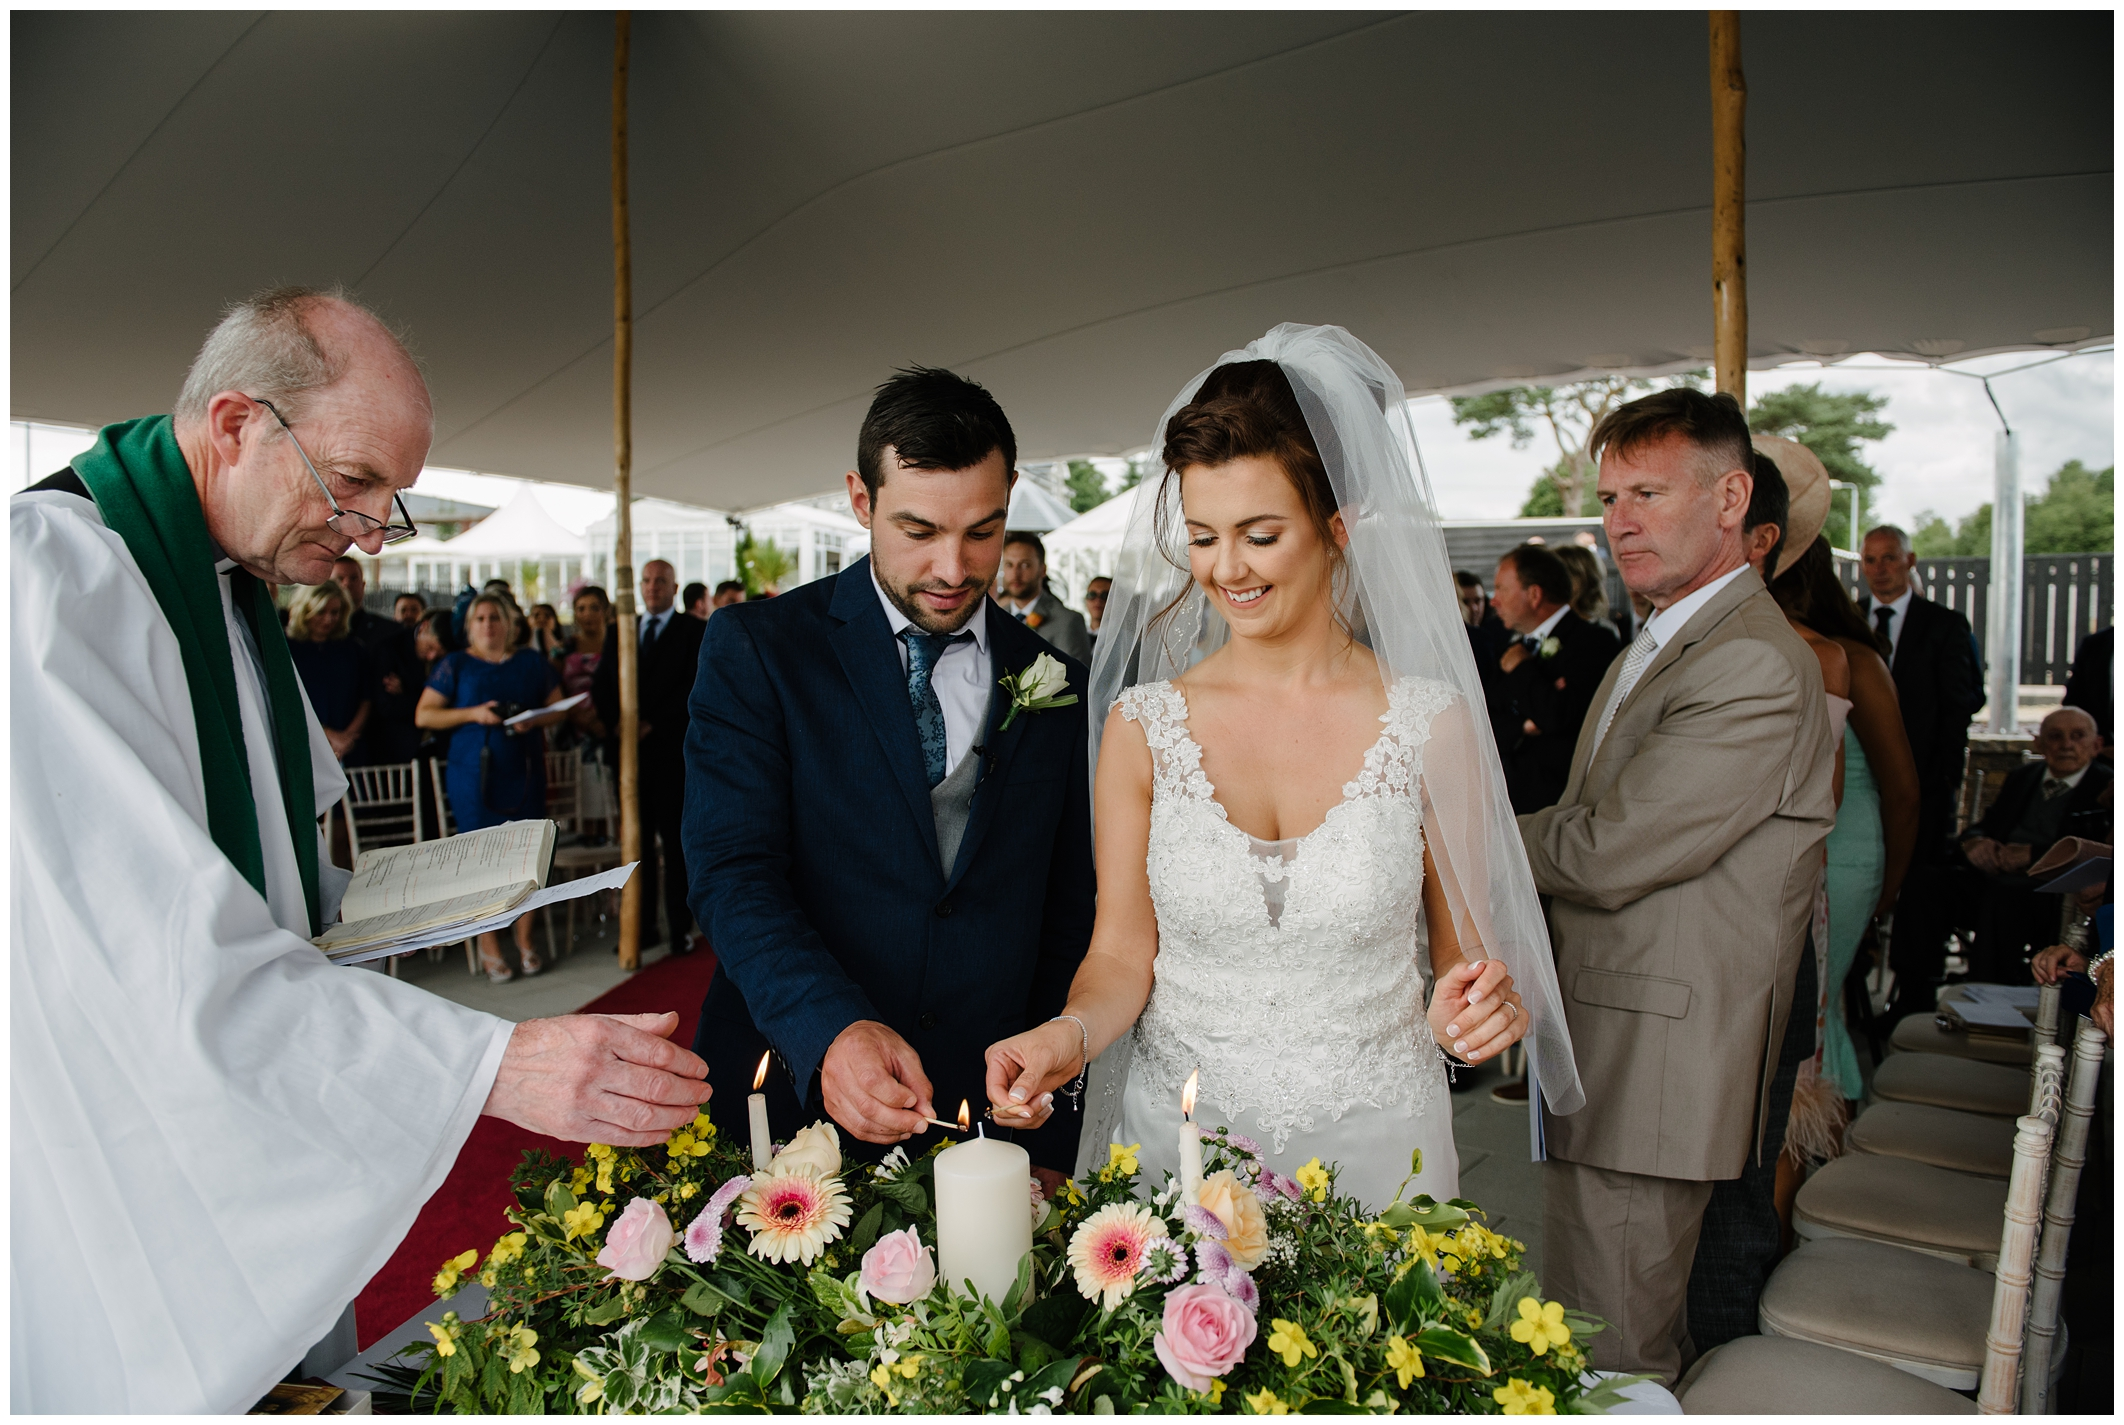 Lynsey_Andy_Rossharbour_Fermanagh_wedding_jude_browne_photography_0065.jpg